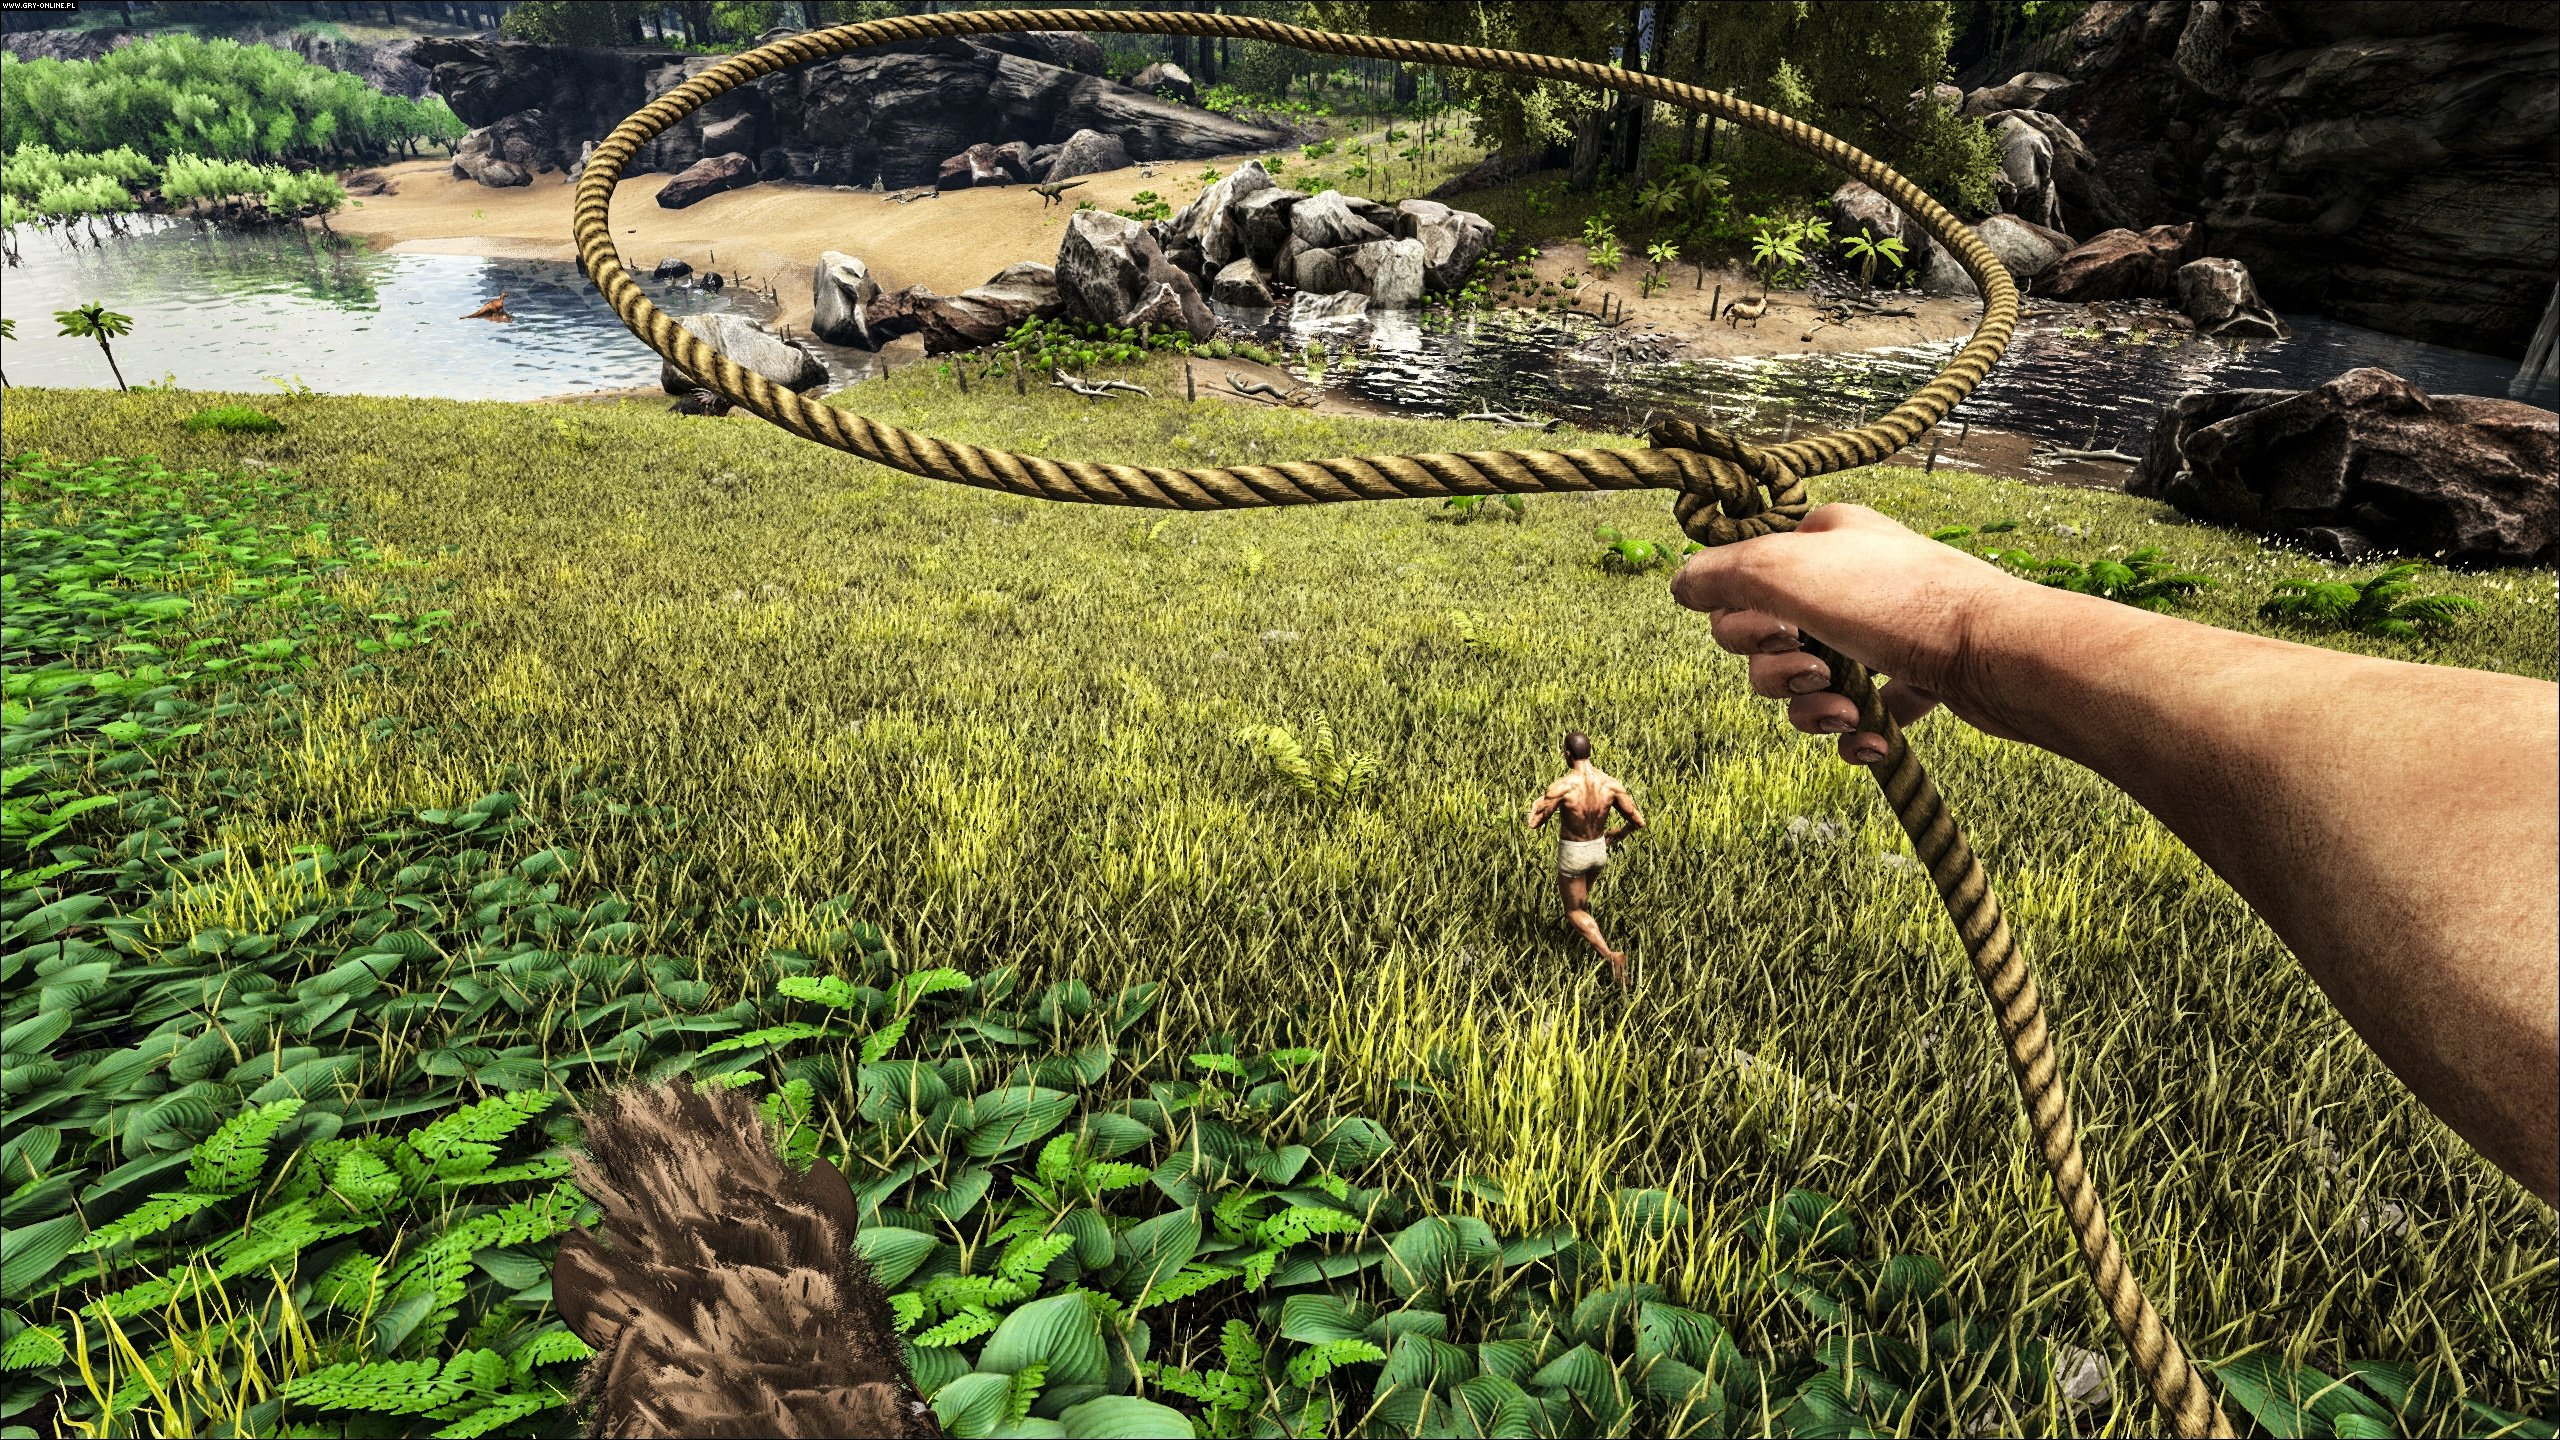 ARK: Survival Evolved PC Gry Screen 51/139, Studio Wildcard